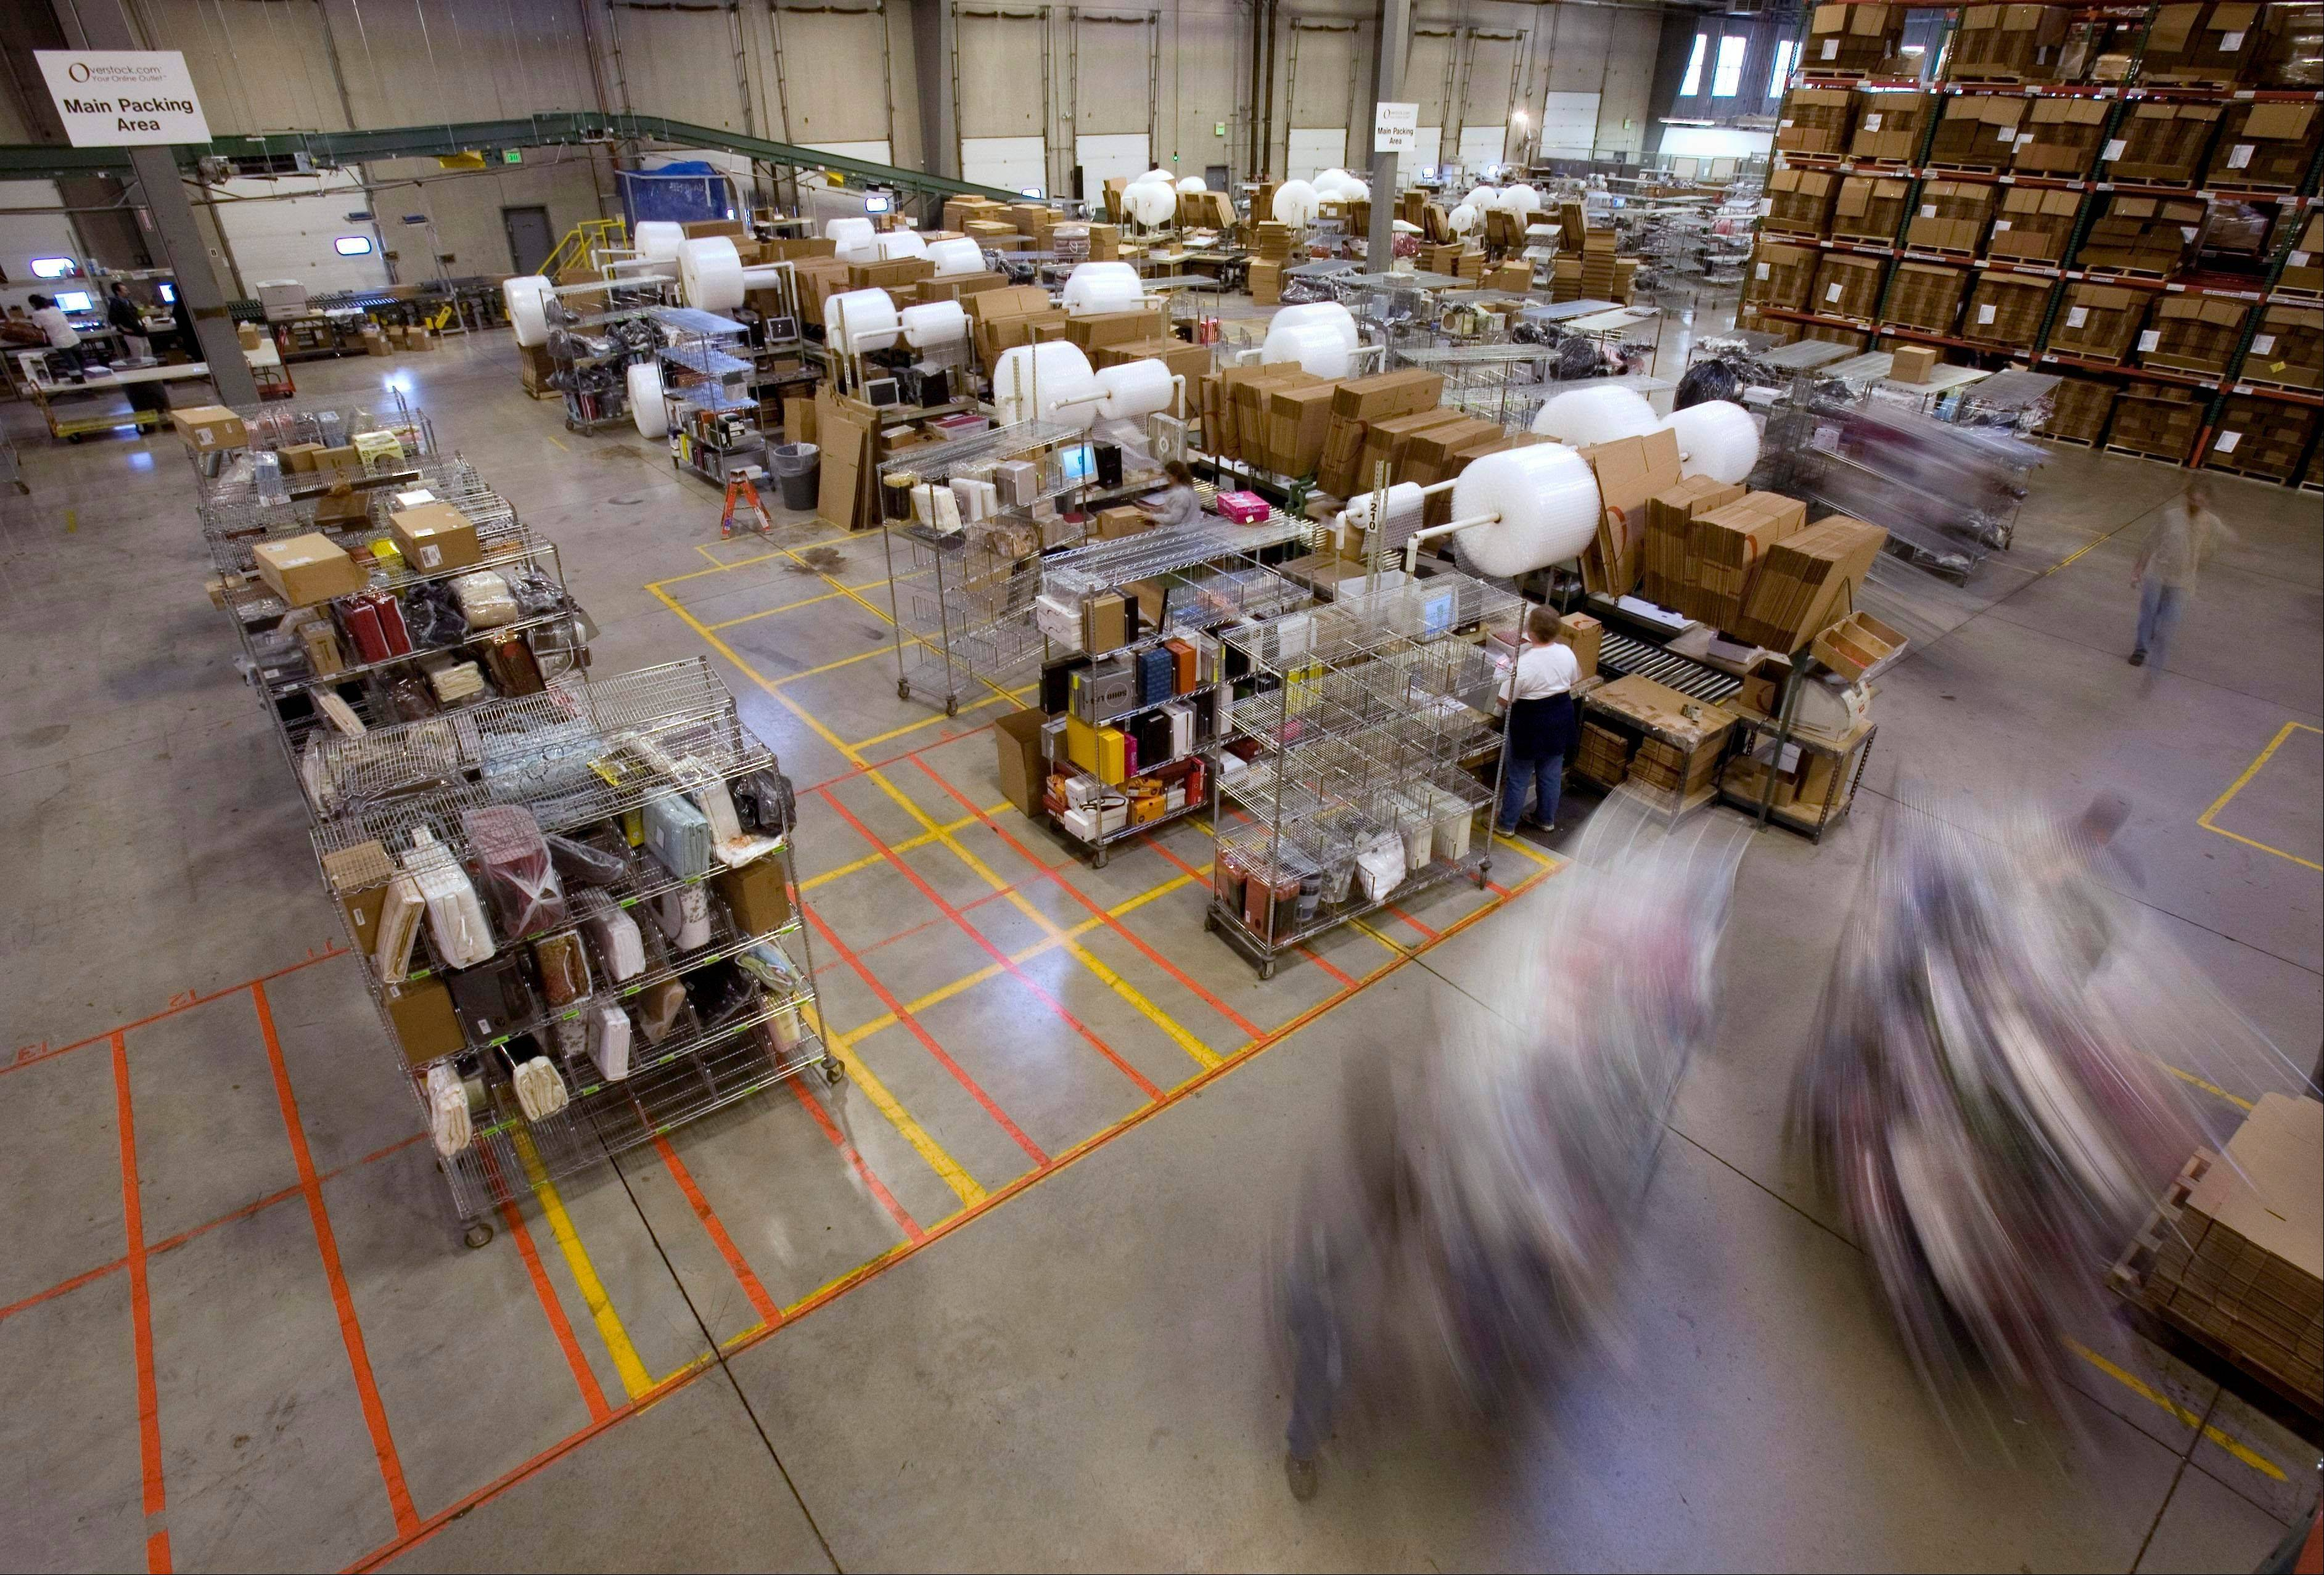 Carts full of merchandise ordered online are rolled to the main packing area for shipping at the Overstock.com warehouse, in Salt Lake City.